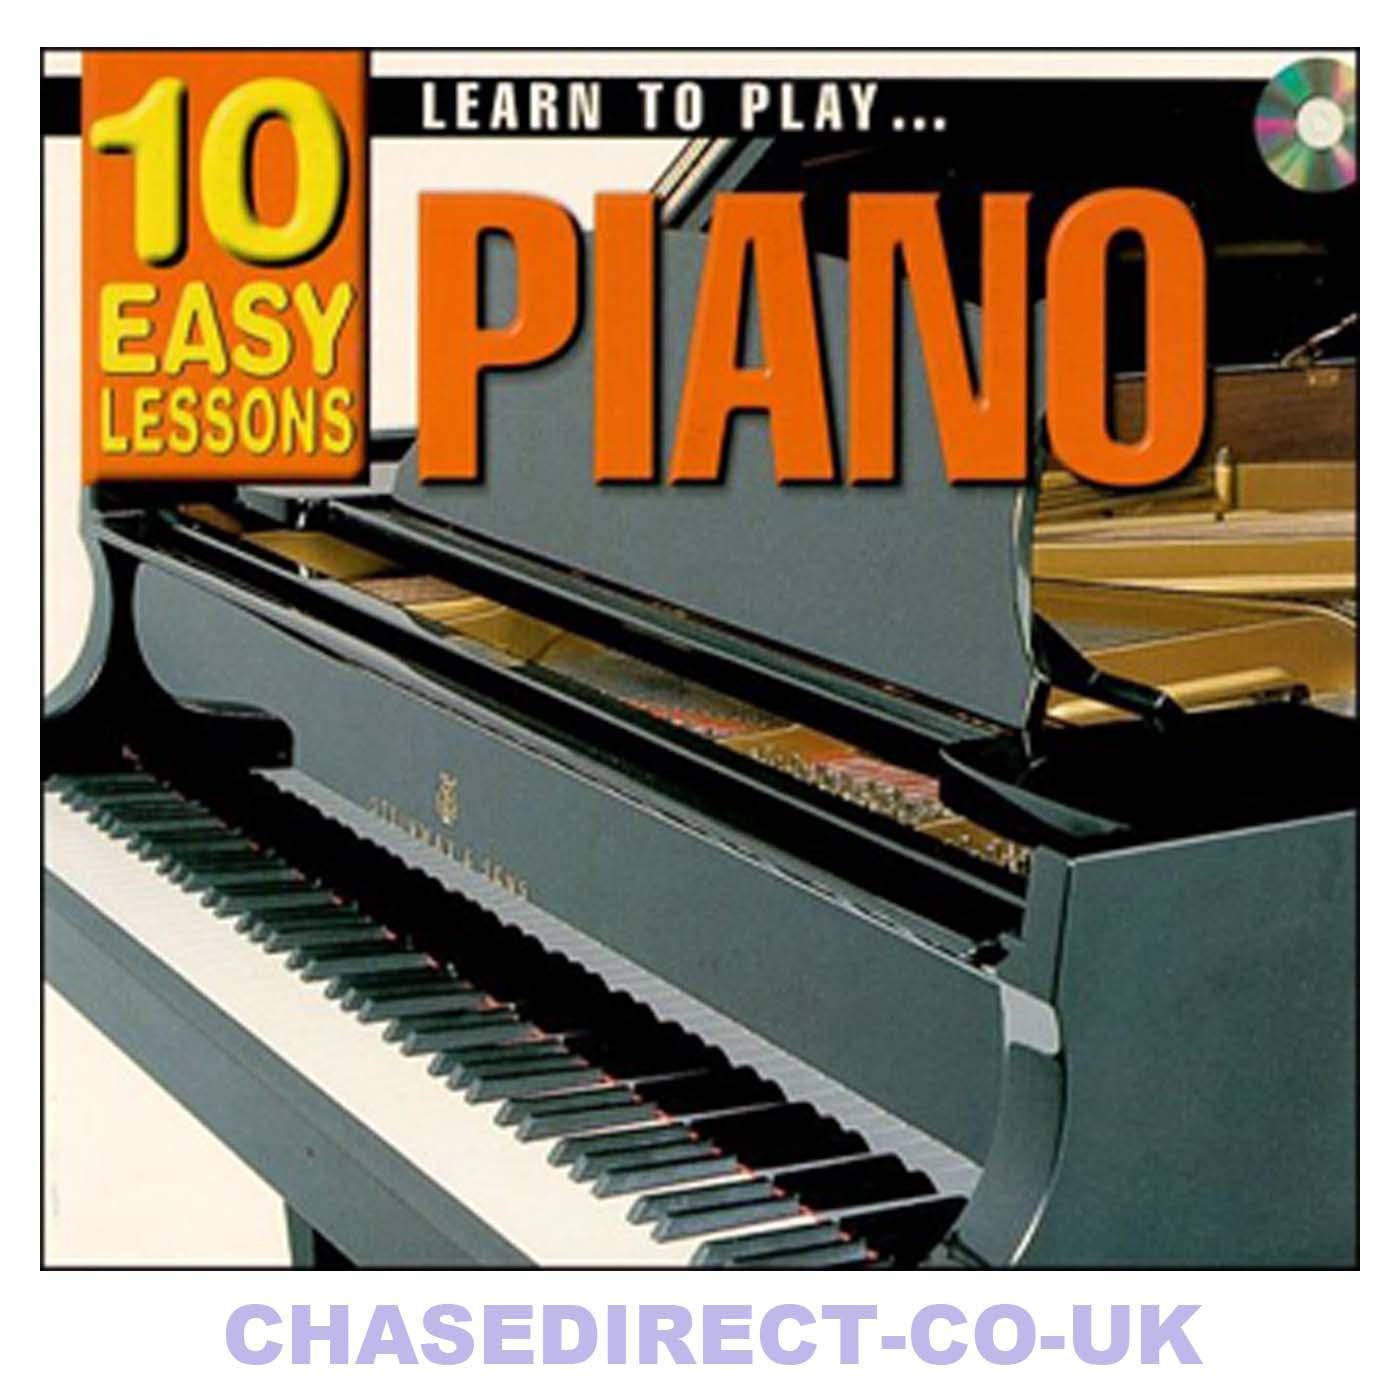 How to play - Popular piano 10 easy lessons